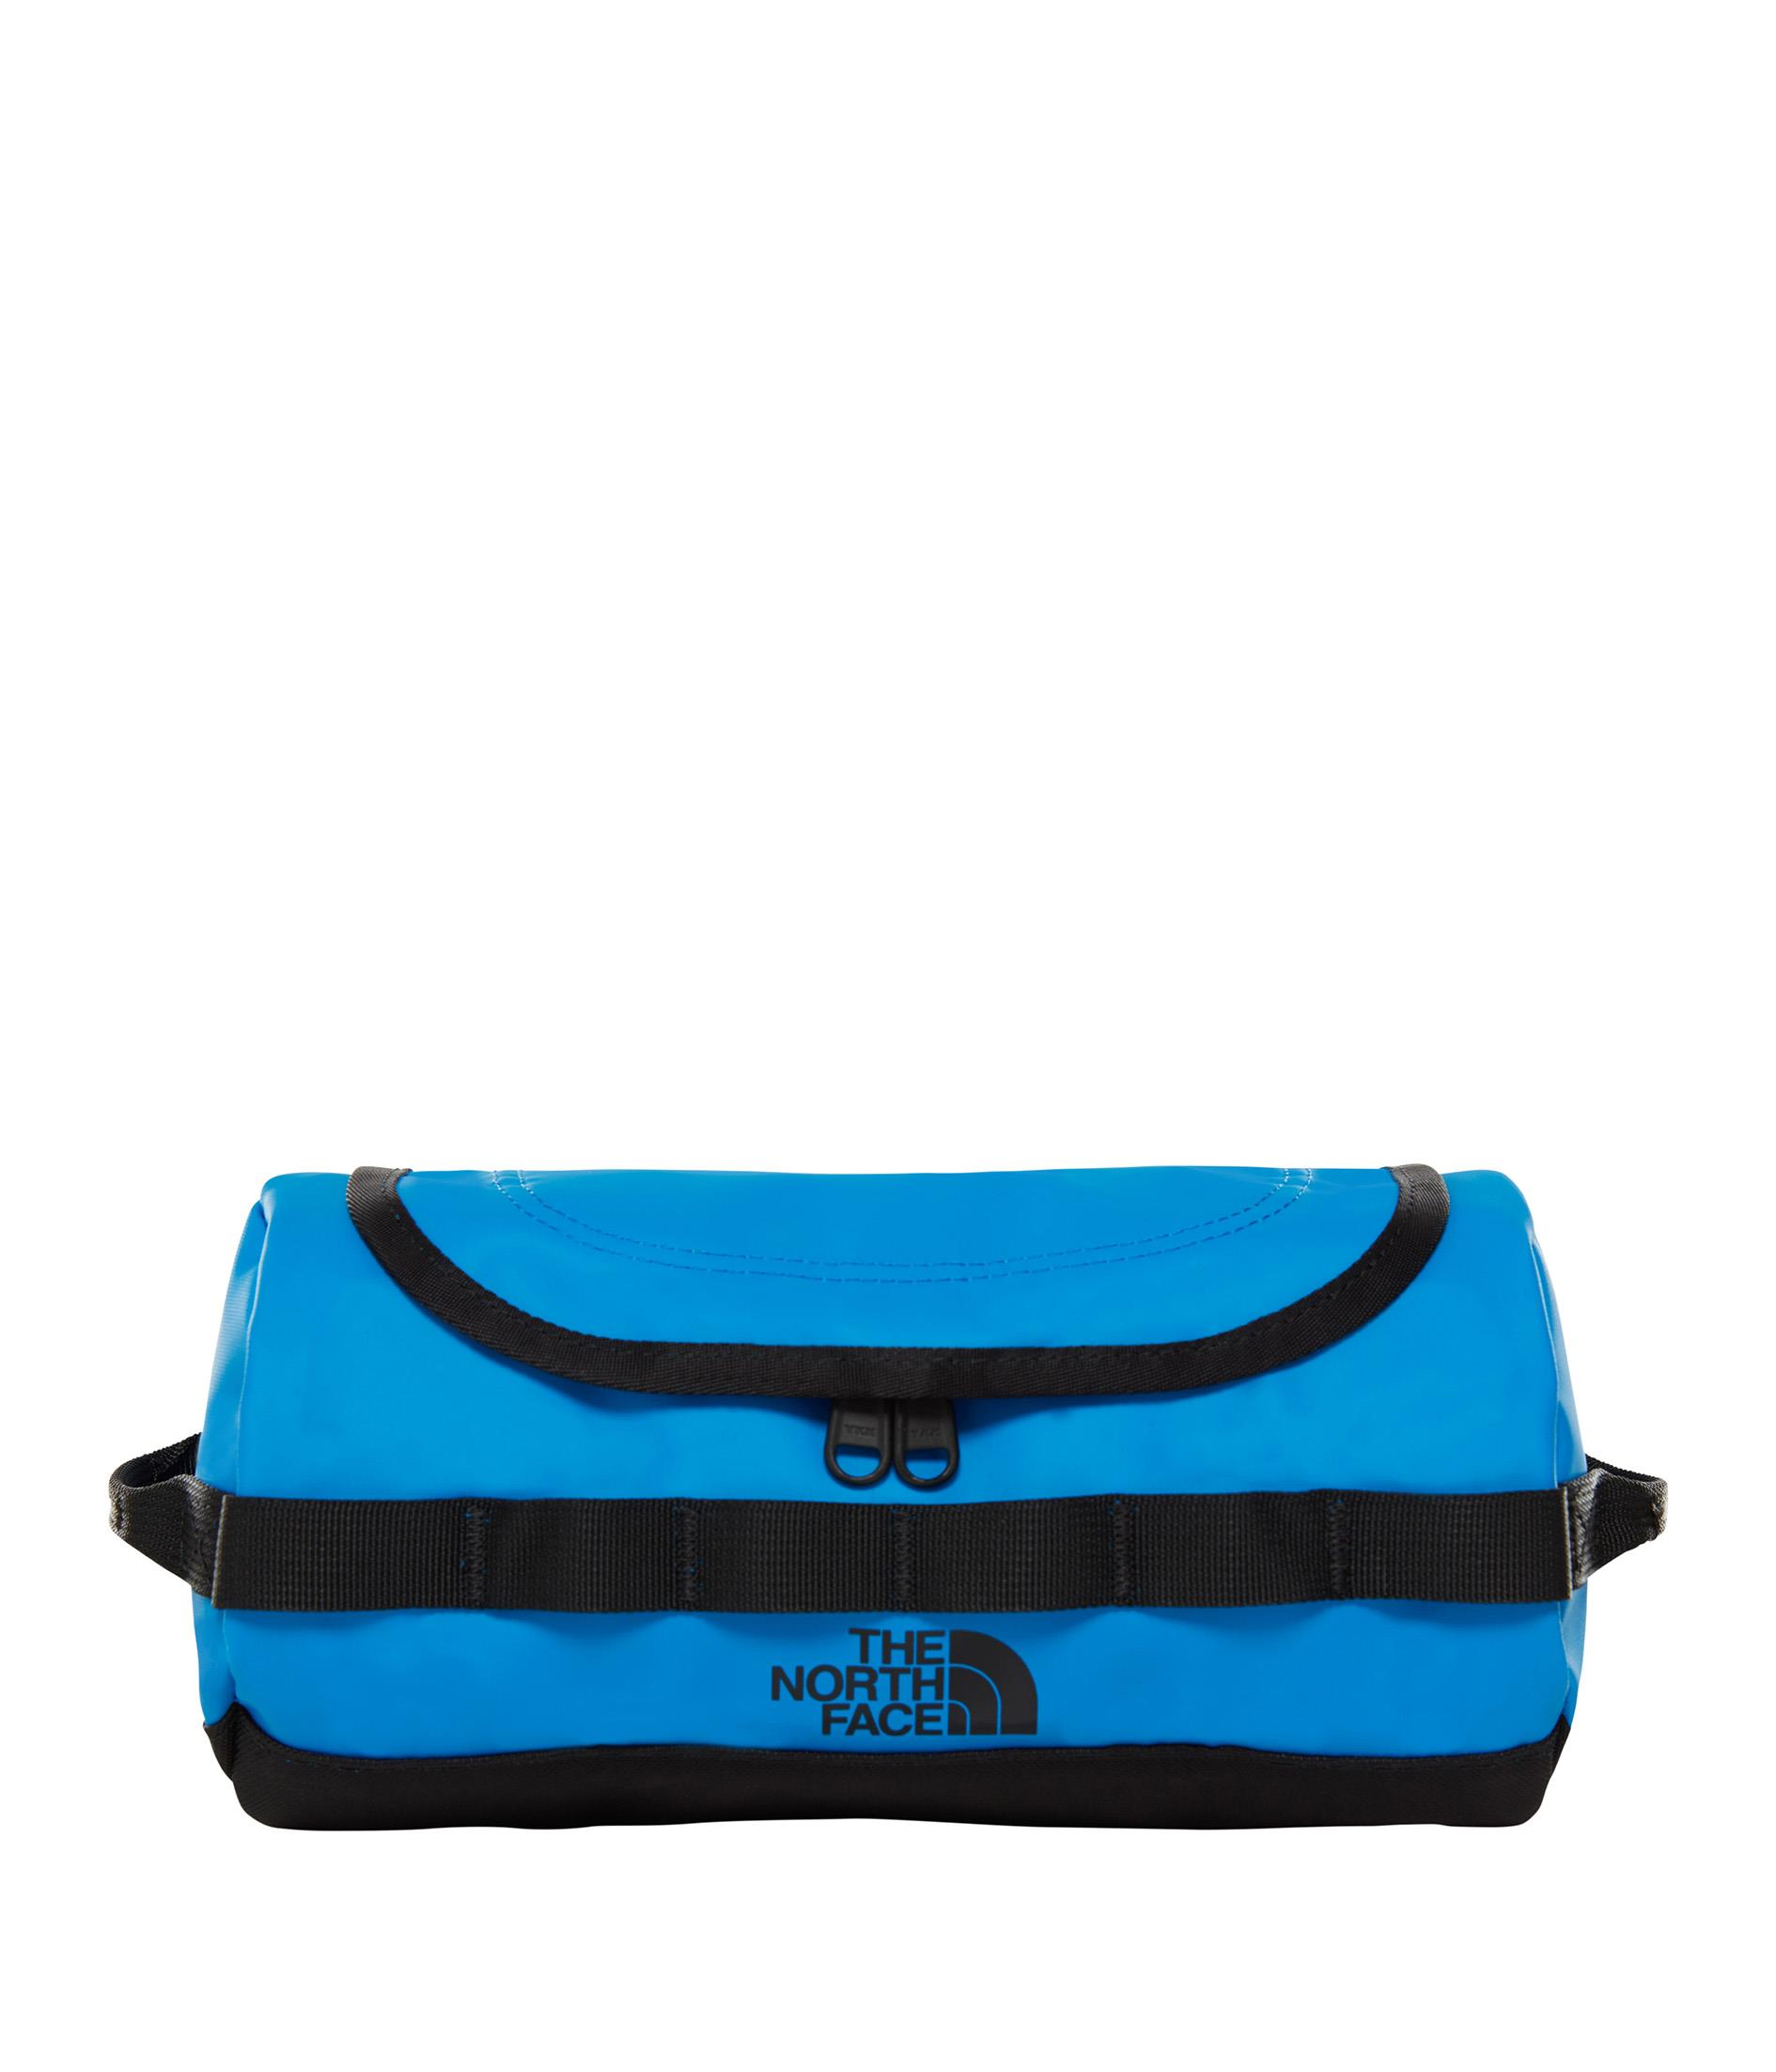 The Northface Bc Travel Canister- S T0Astpsa9 Çanta